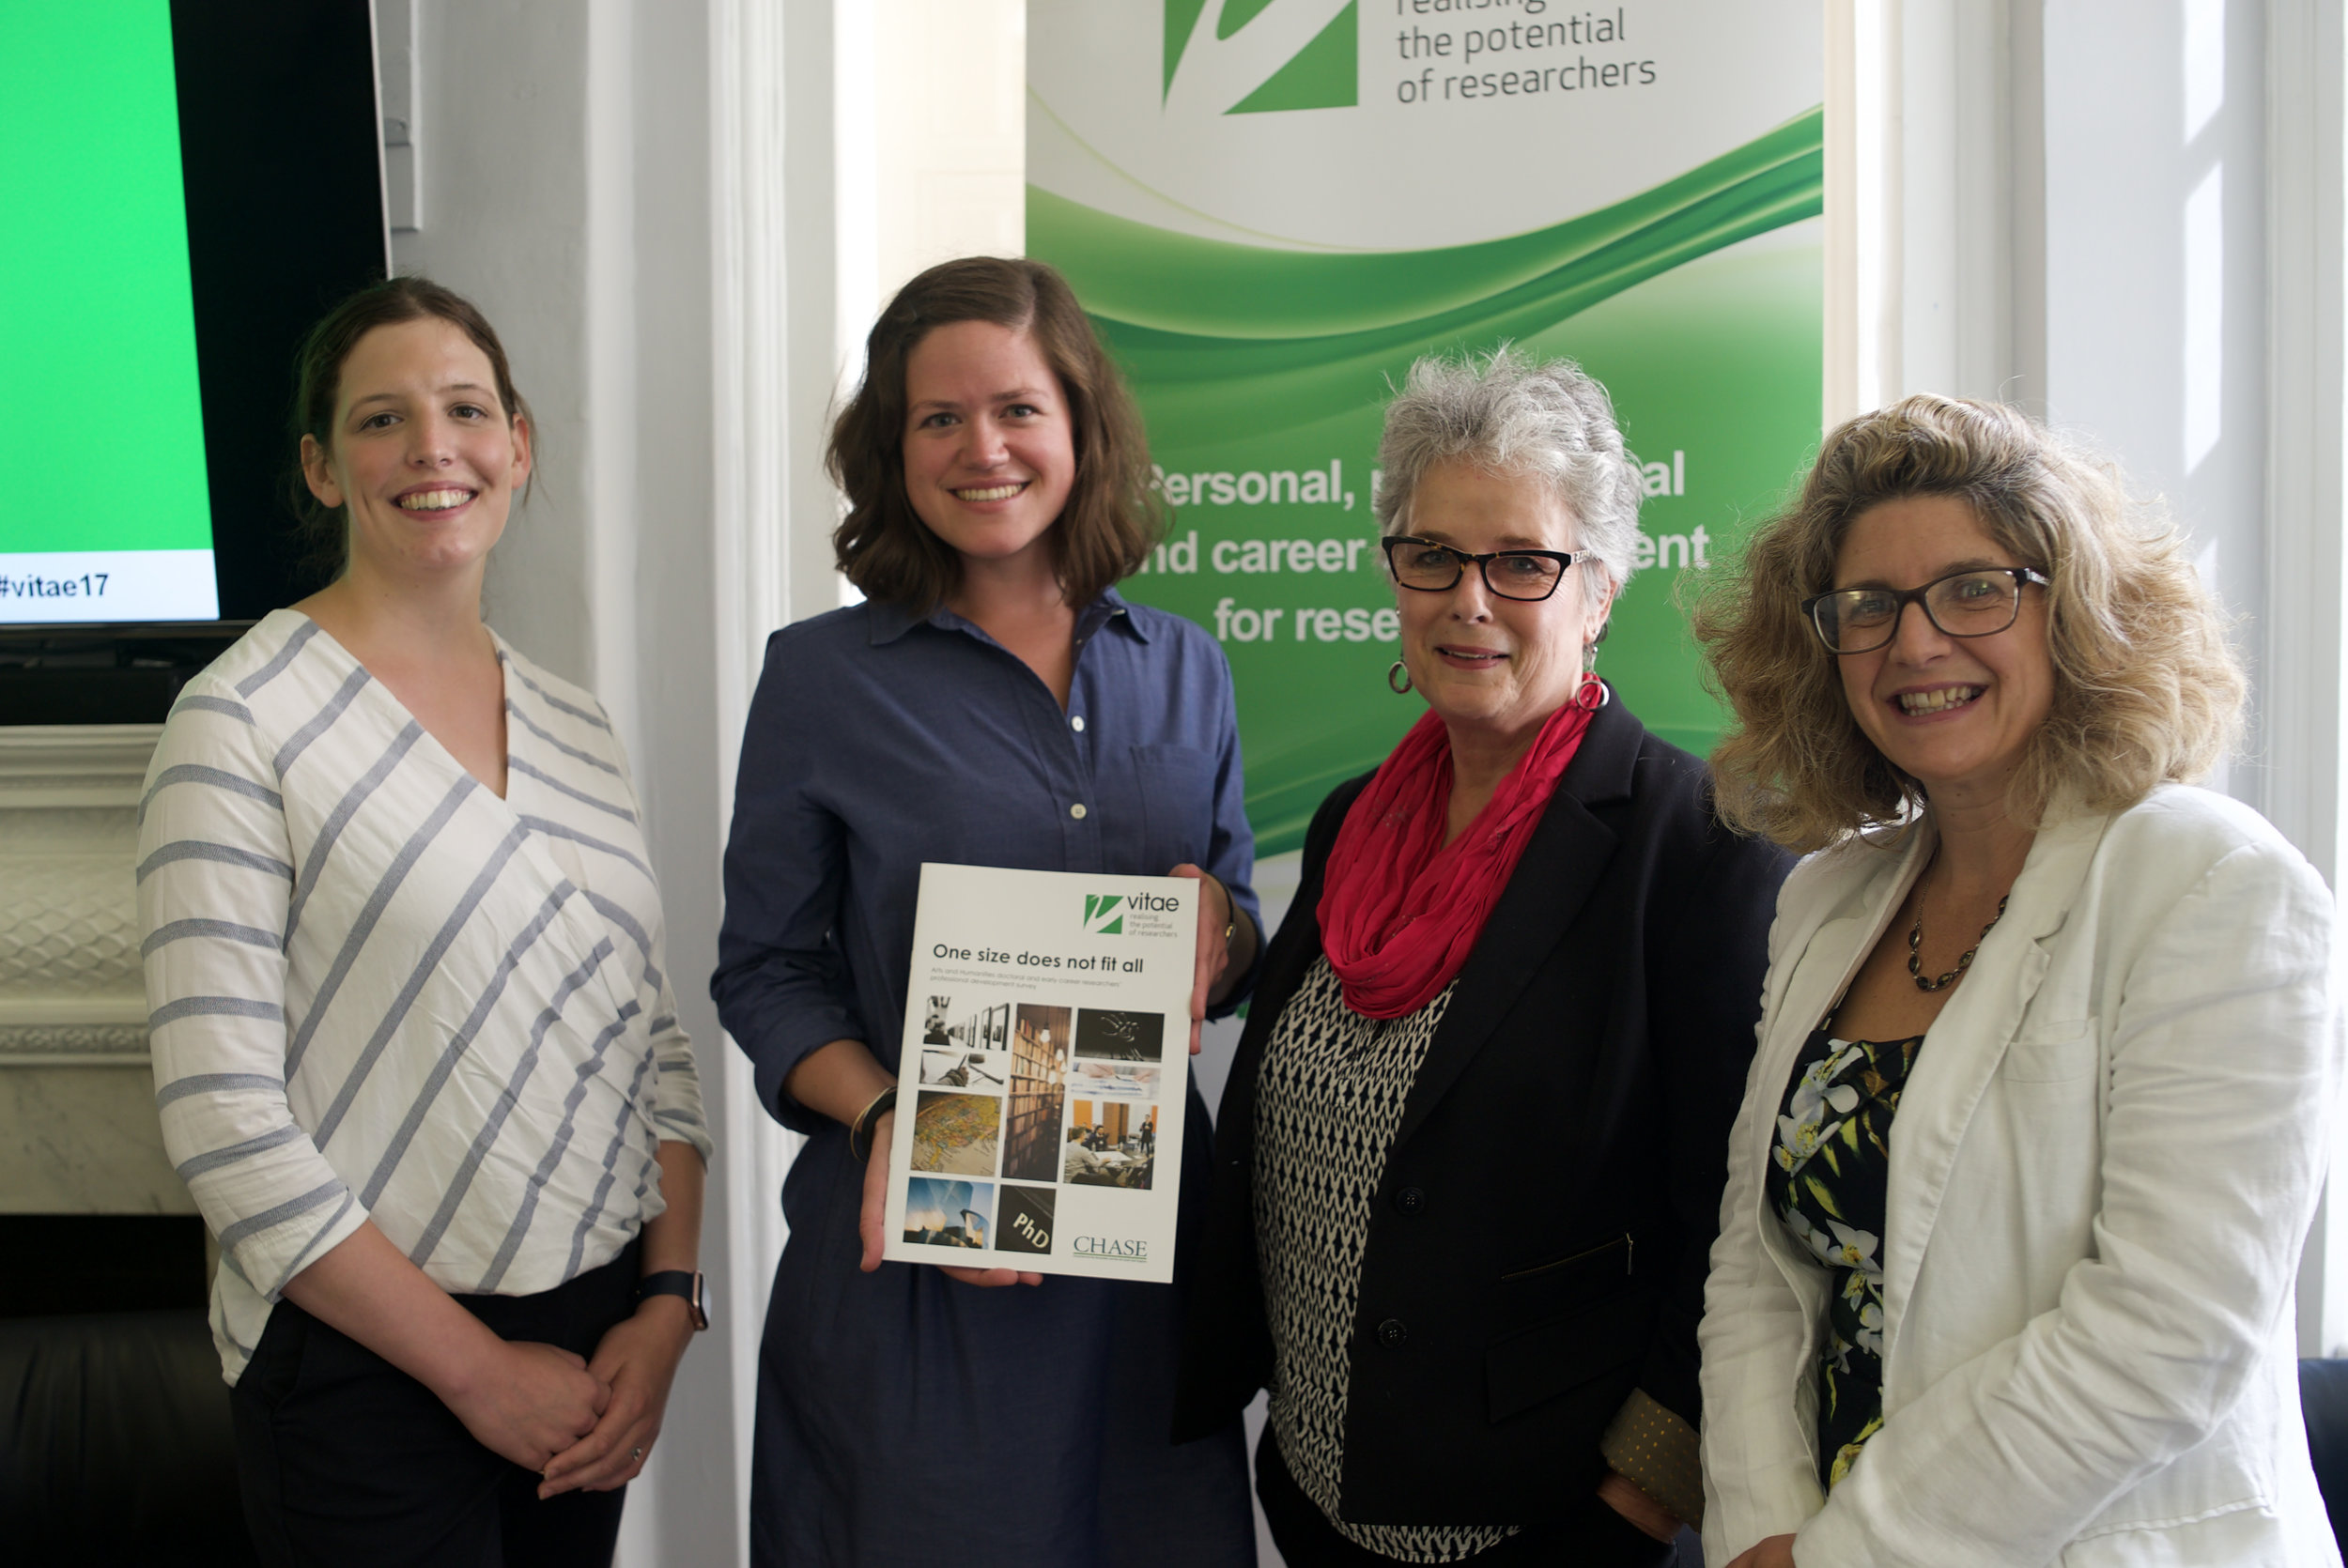 L-R: Dr Joanna Dunster, Portfolio Manager: Research Careers and Training, AHRC;Marie-Alix Thouaille, Doctoral Researcher, UEA and CHASE funded;Dr Denise deCaires Narain, CHASE DTP Director and Clare Viney, CEO, CRAC.